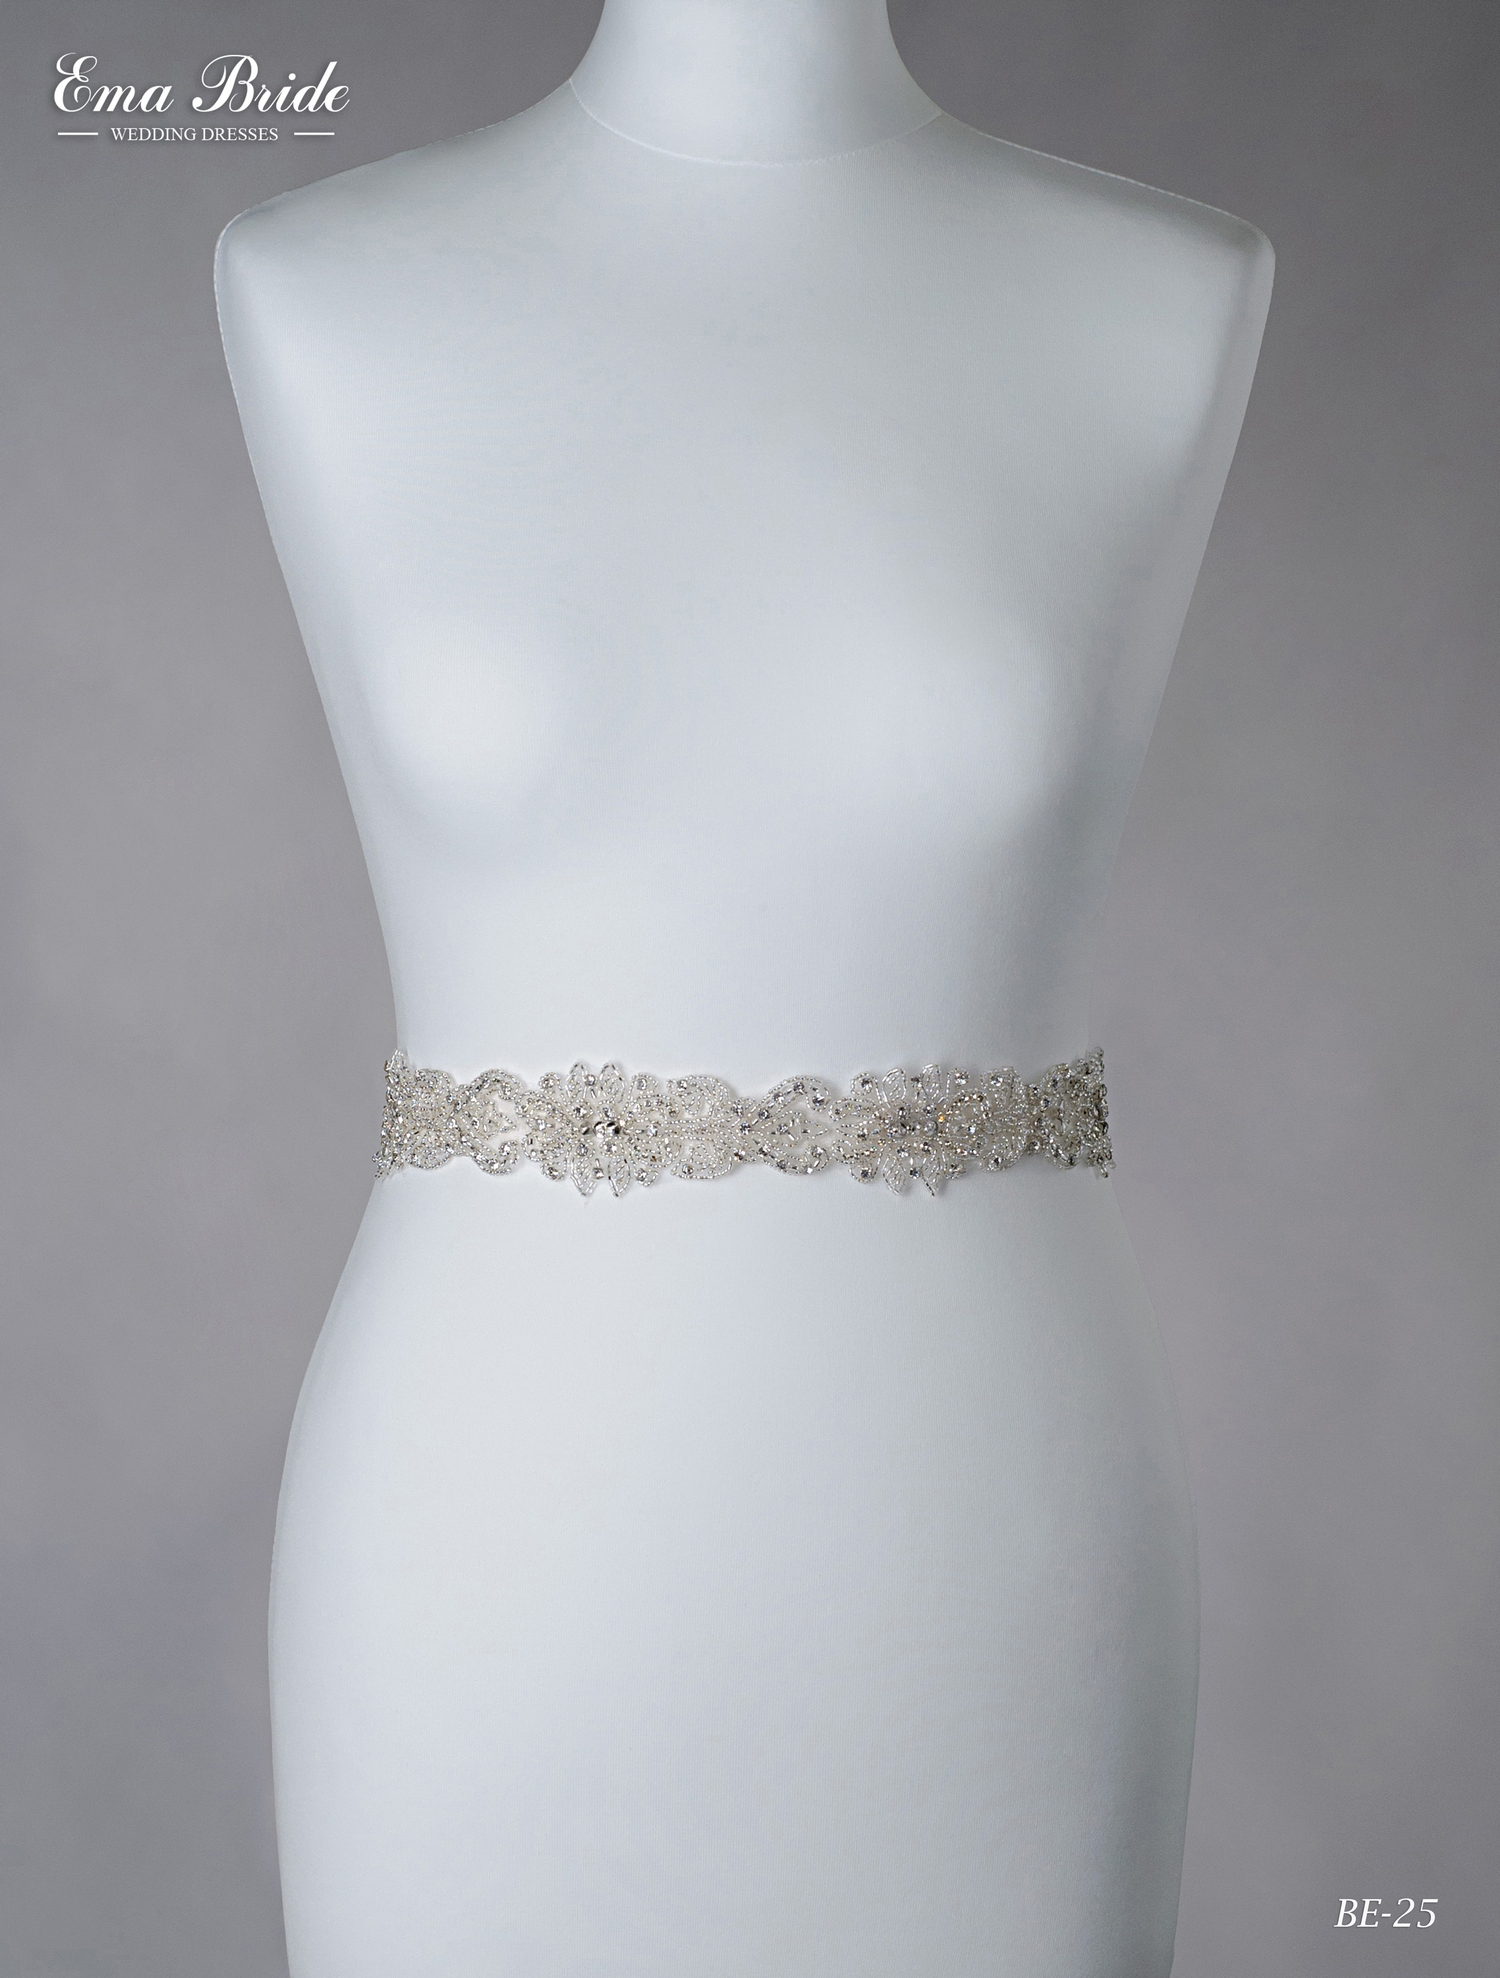 A belt for a wedding dress Be-25